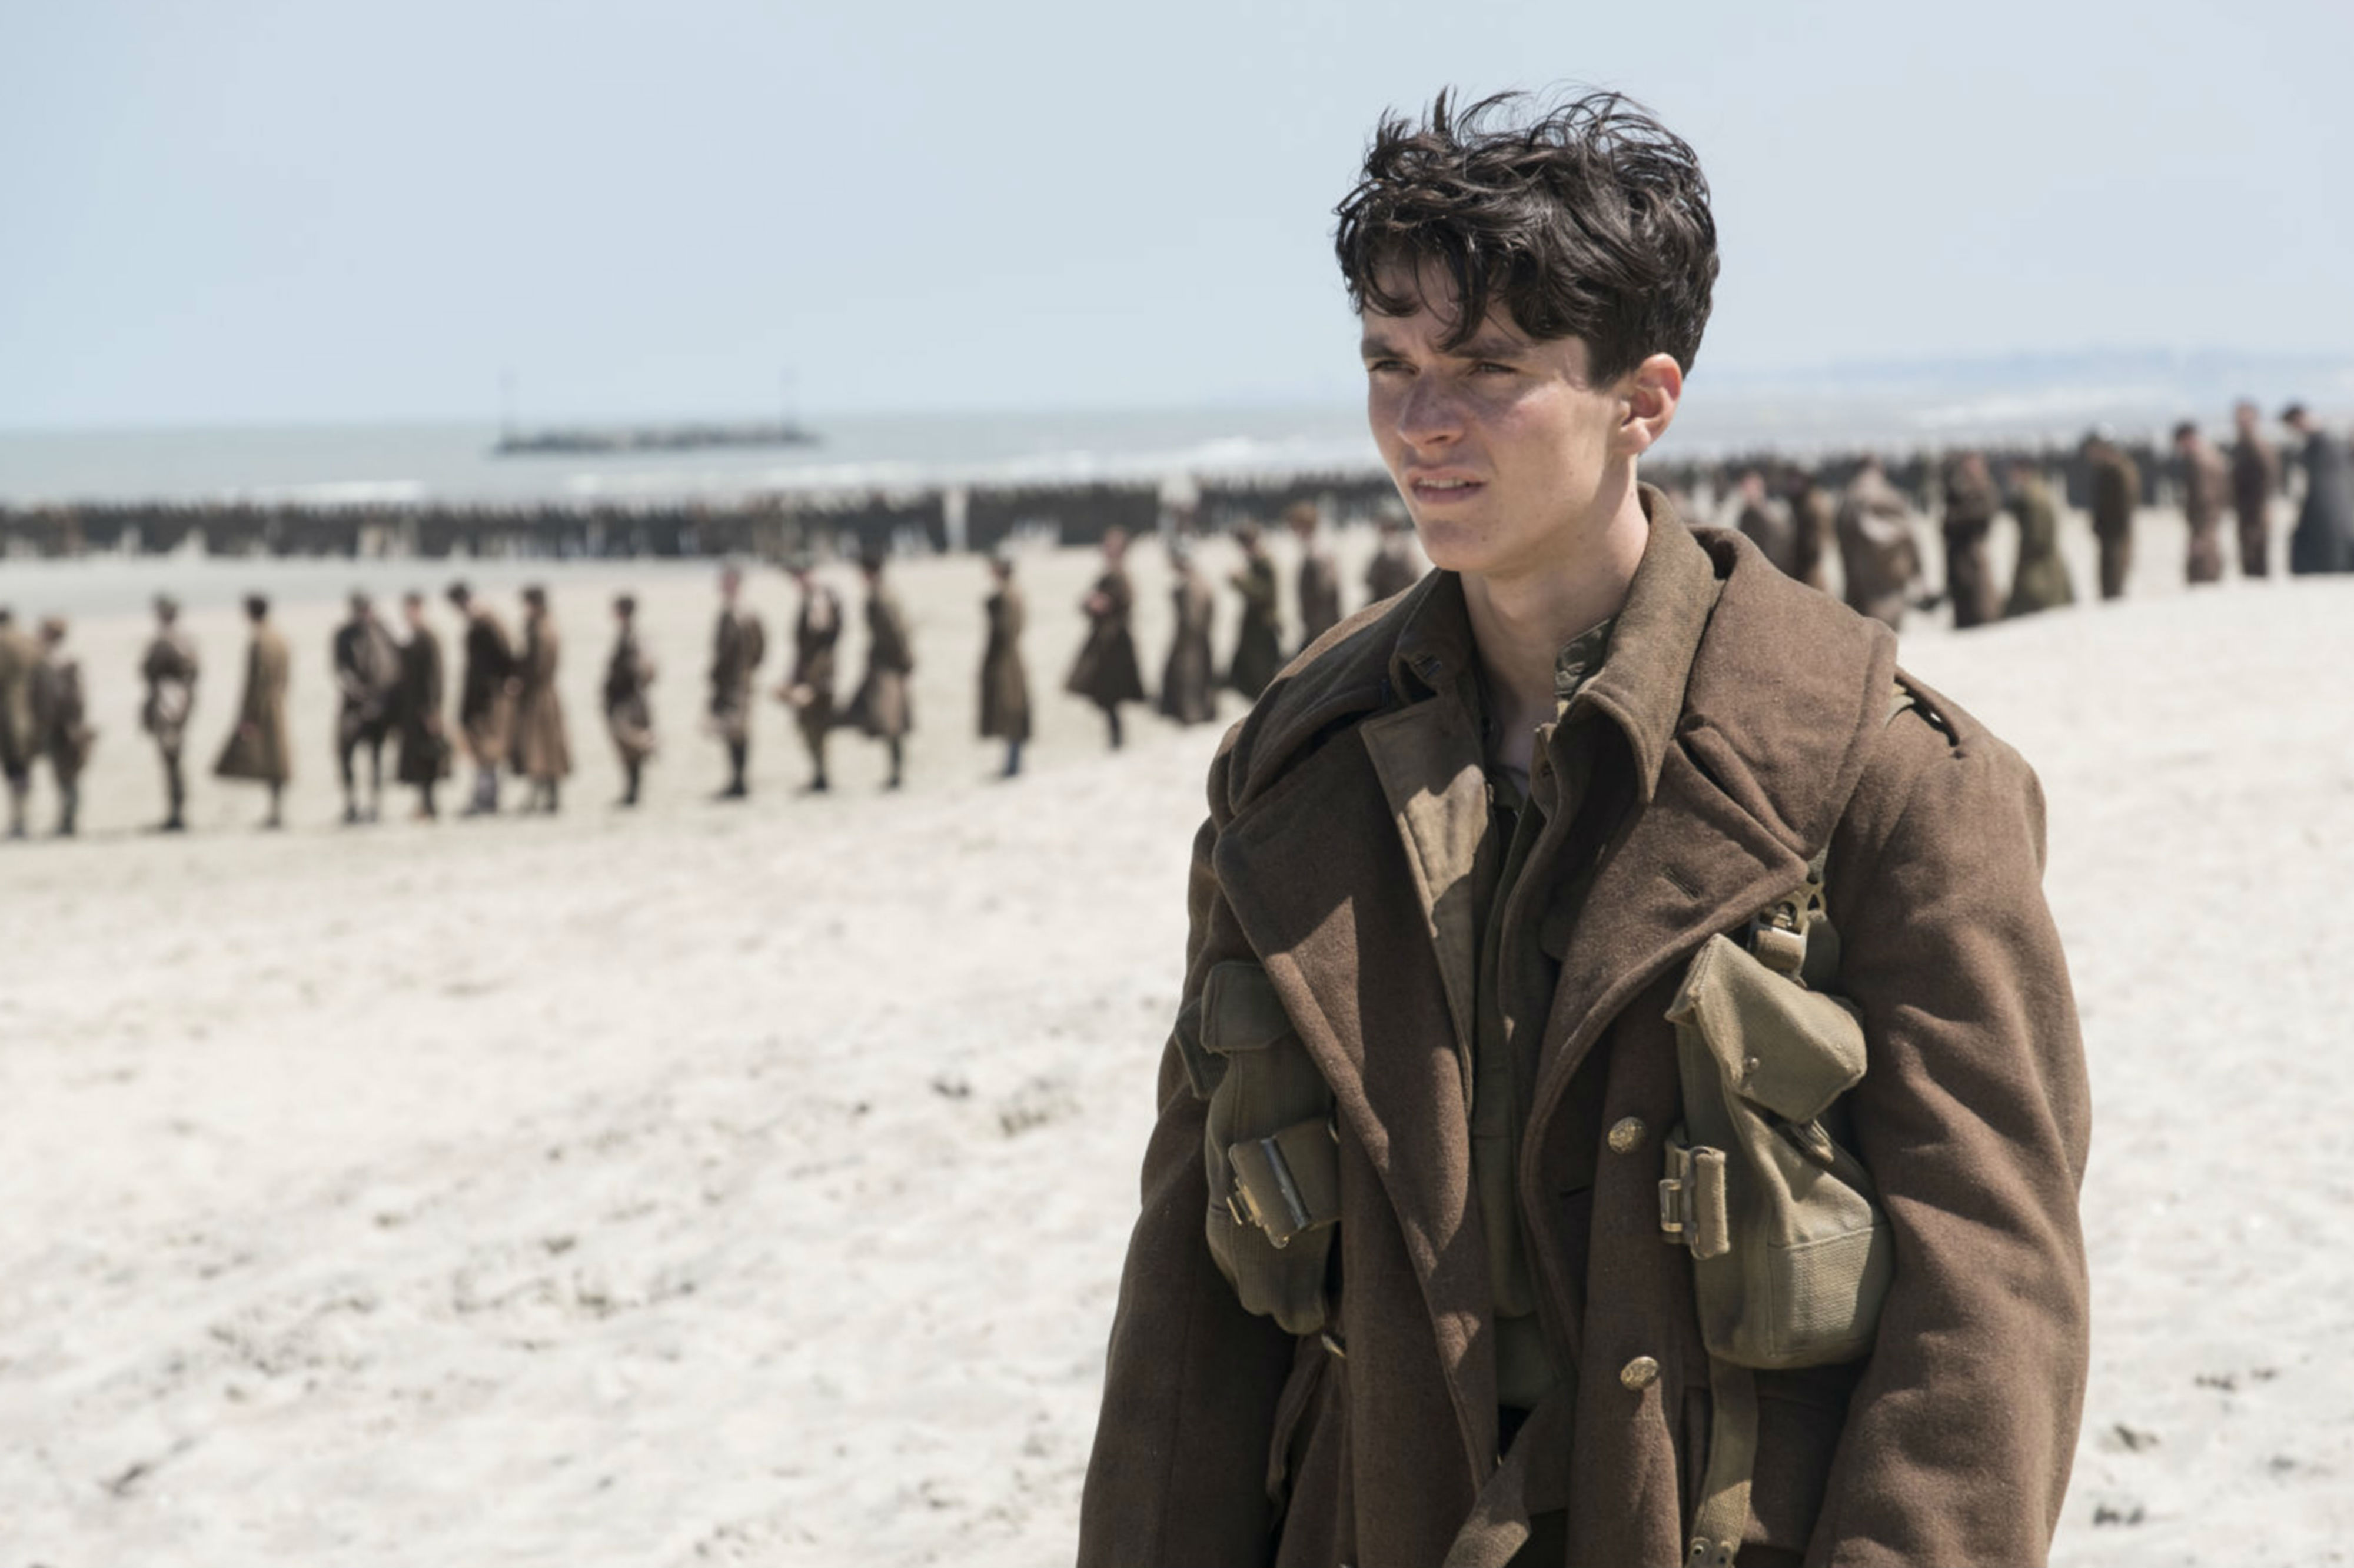 Moving quotes about Dunkirk from men who were there